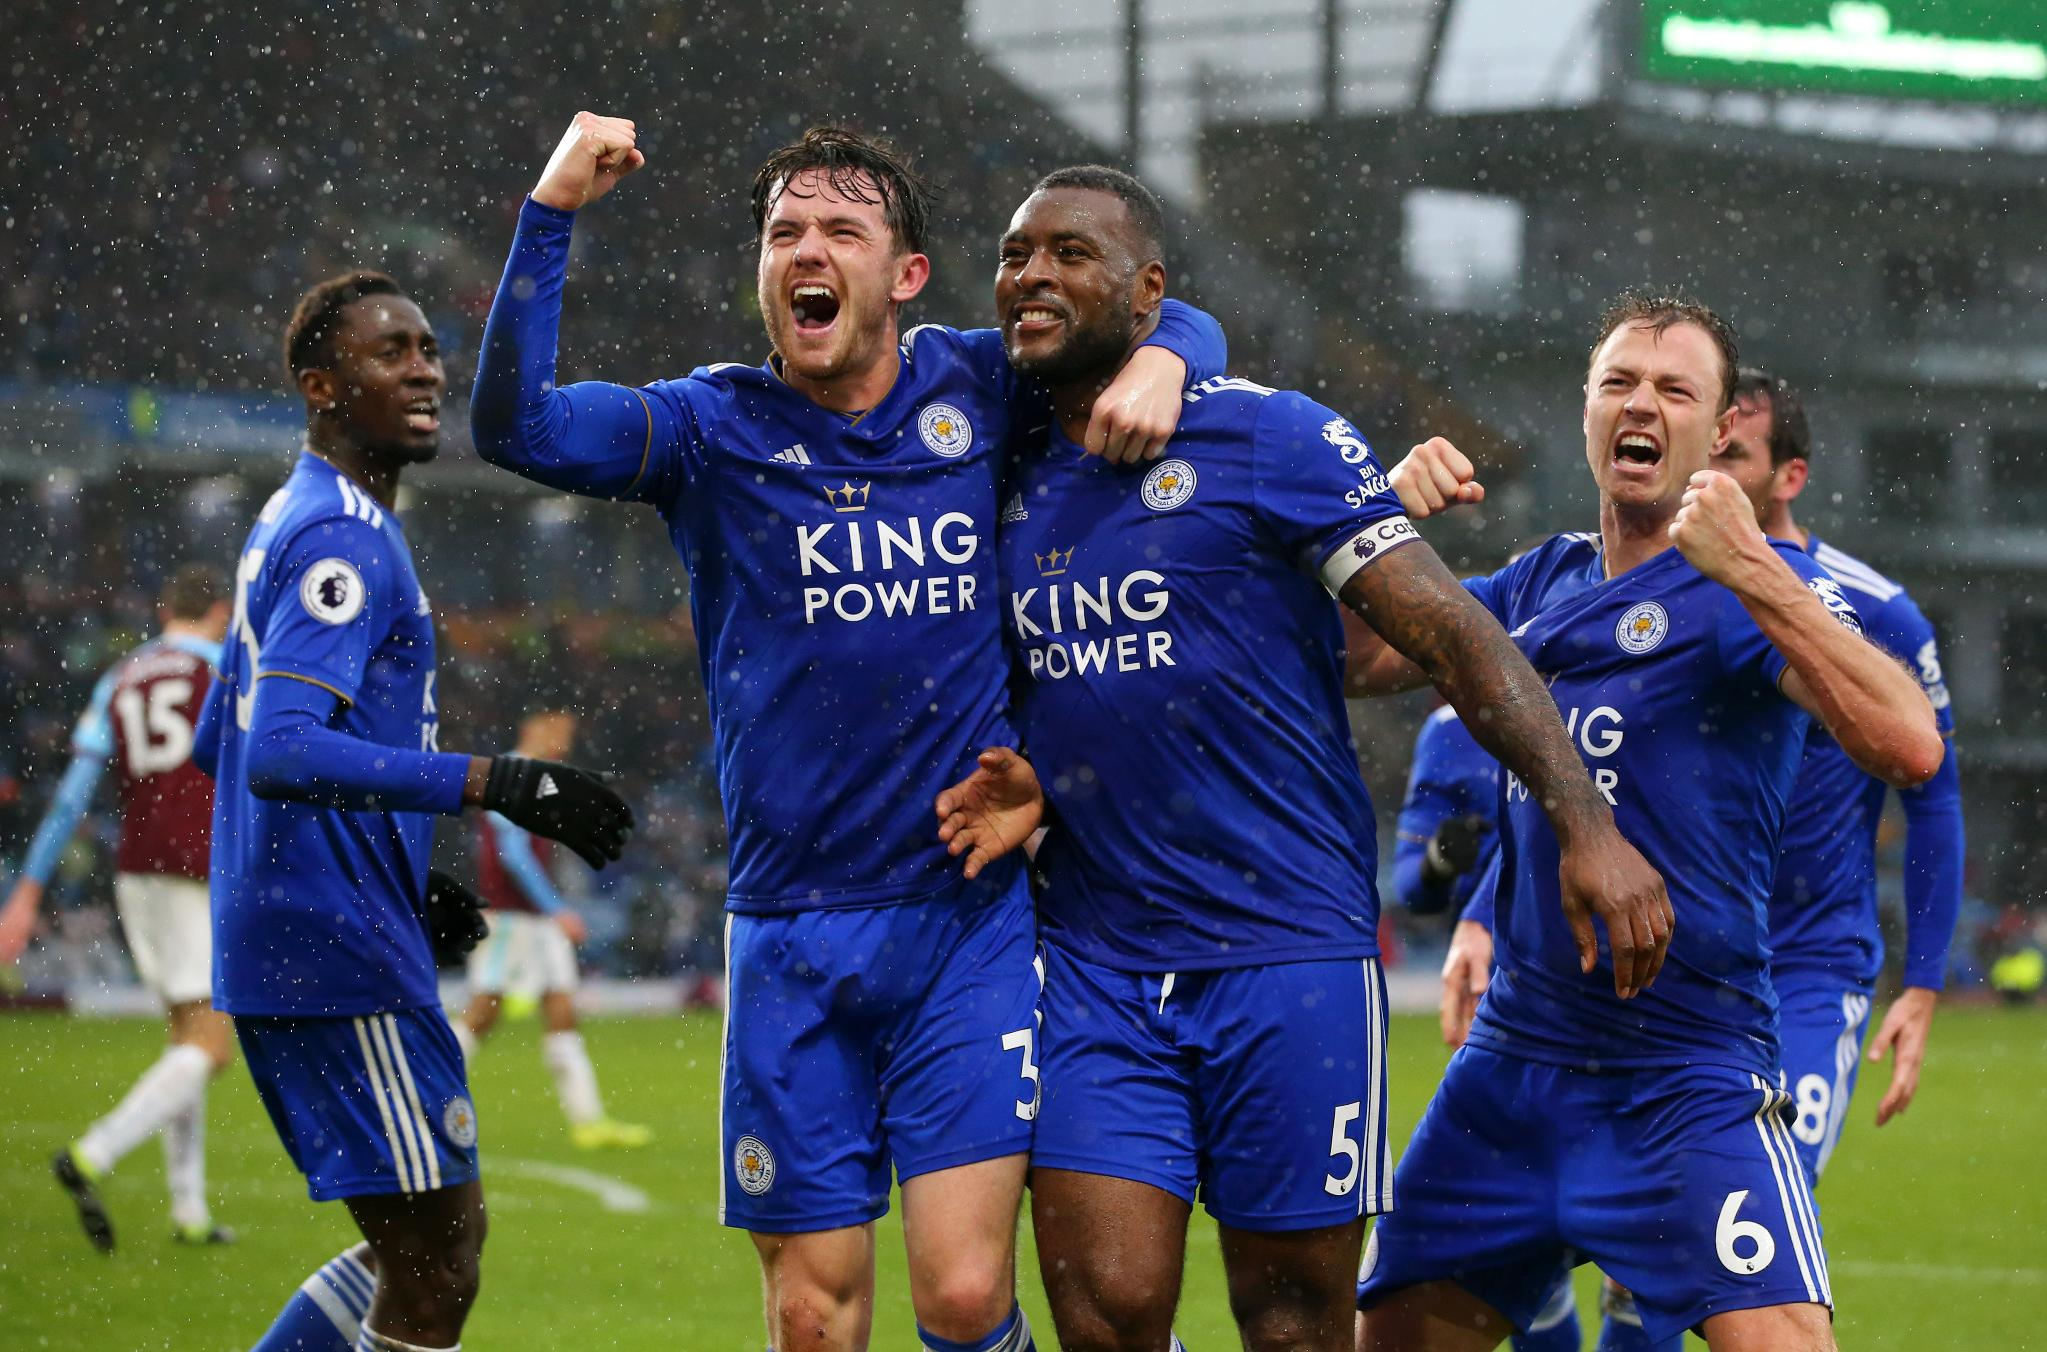 EPL: Ndidi Stars, Iheanacho Benched As 10-Man Leicester Win At Burnley